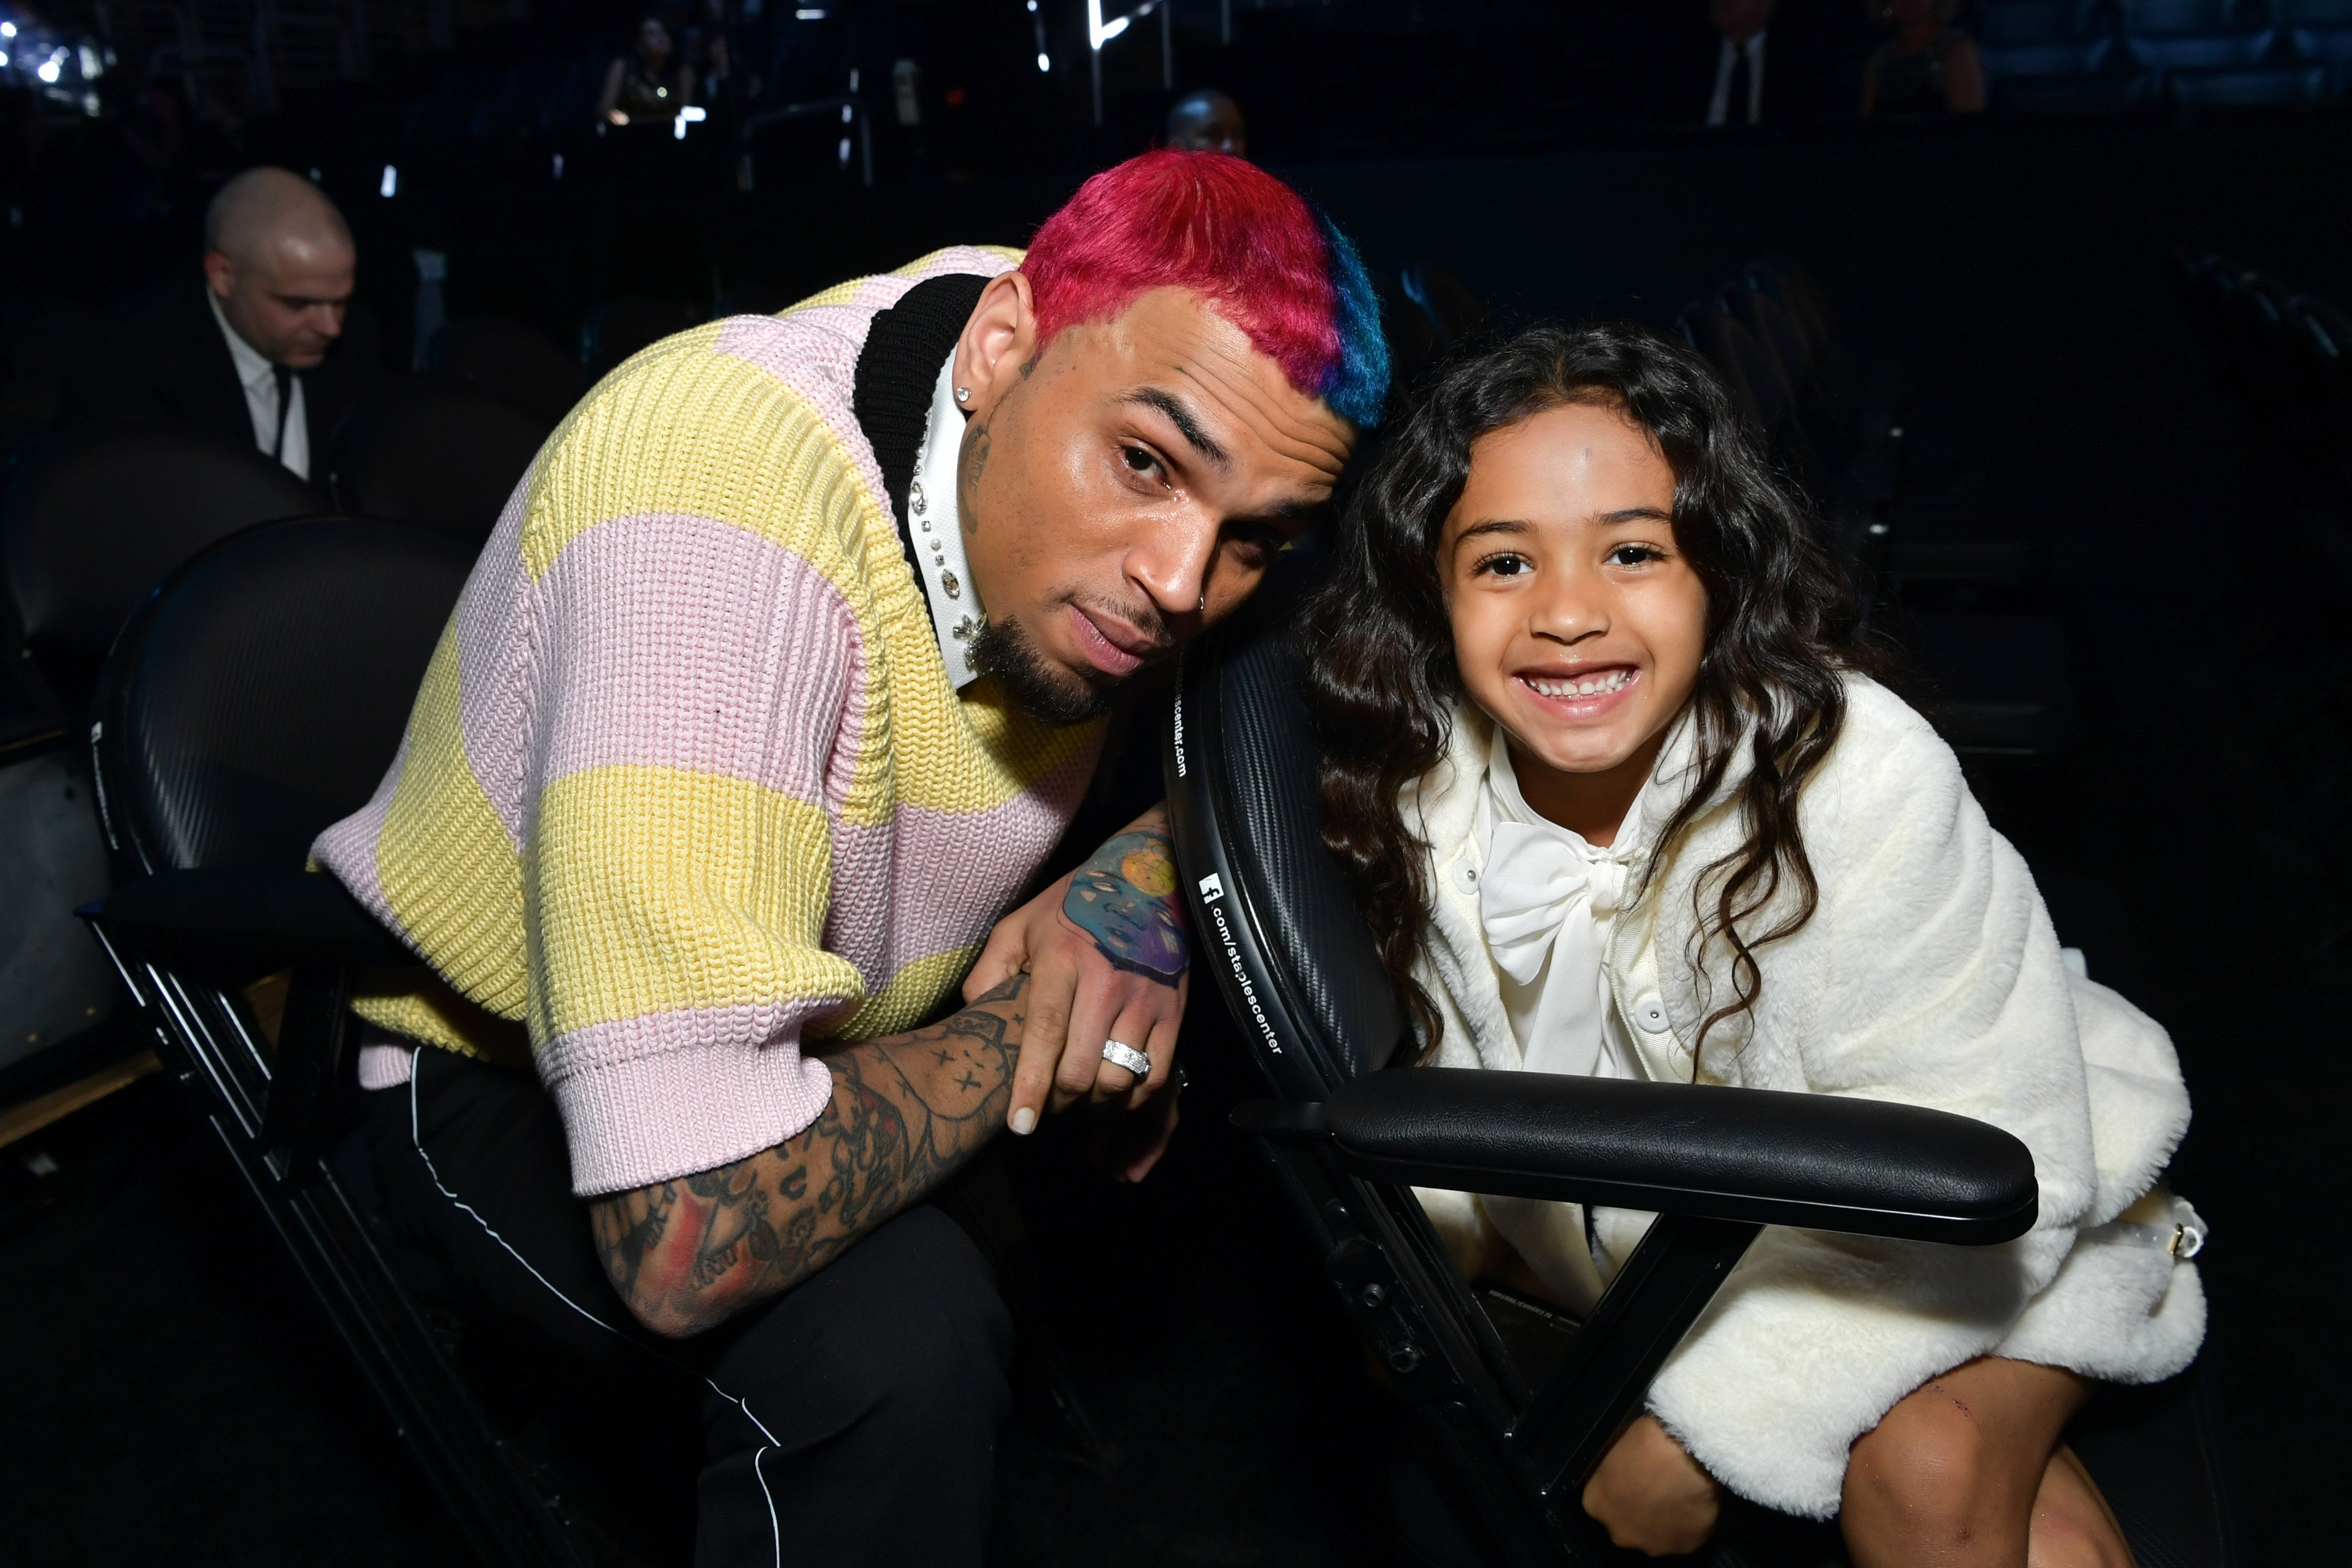 Royalty and Chris Brown attend the 62nd Annual GRAMMY Awards on January 26, 2020 in Los Angeles, California. | Source: Getty Images